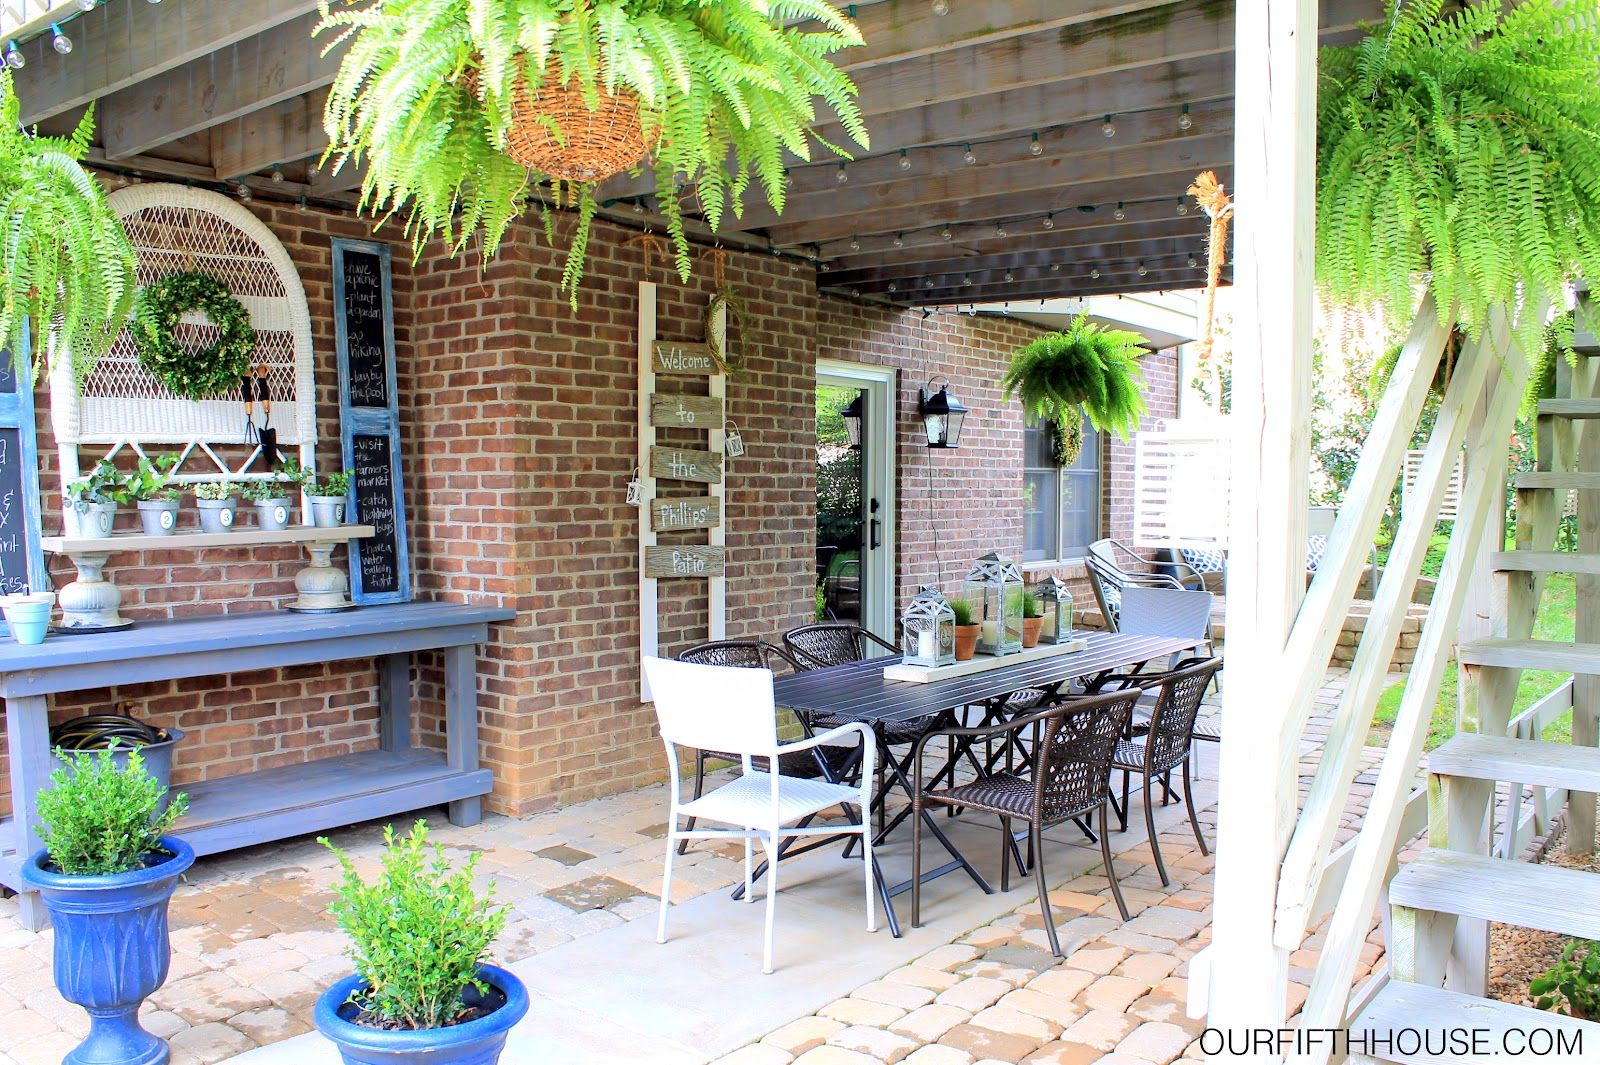 outdoor dining areas - Google Search